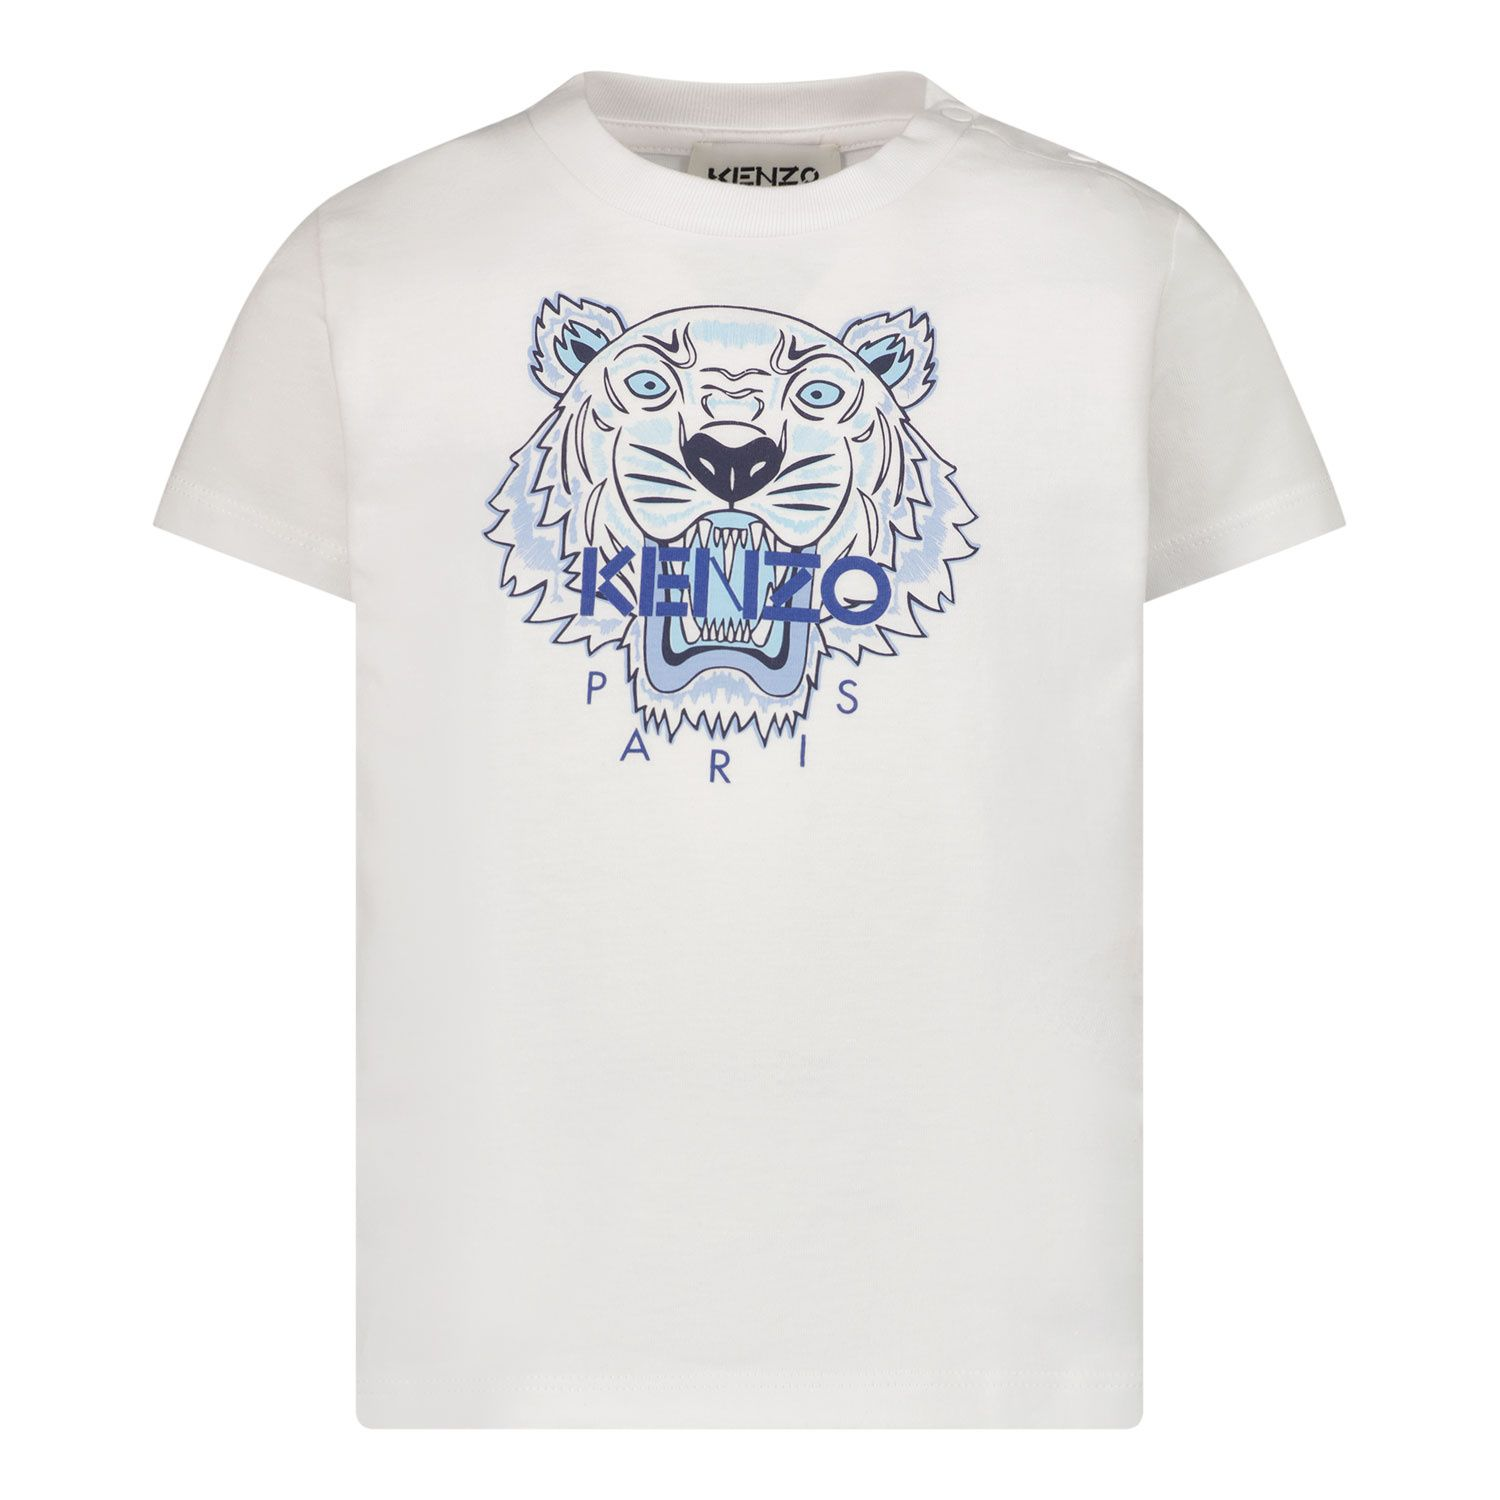 Picture of Kenzo K05050 baby shirt white